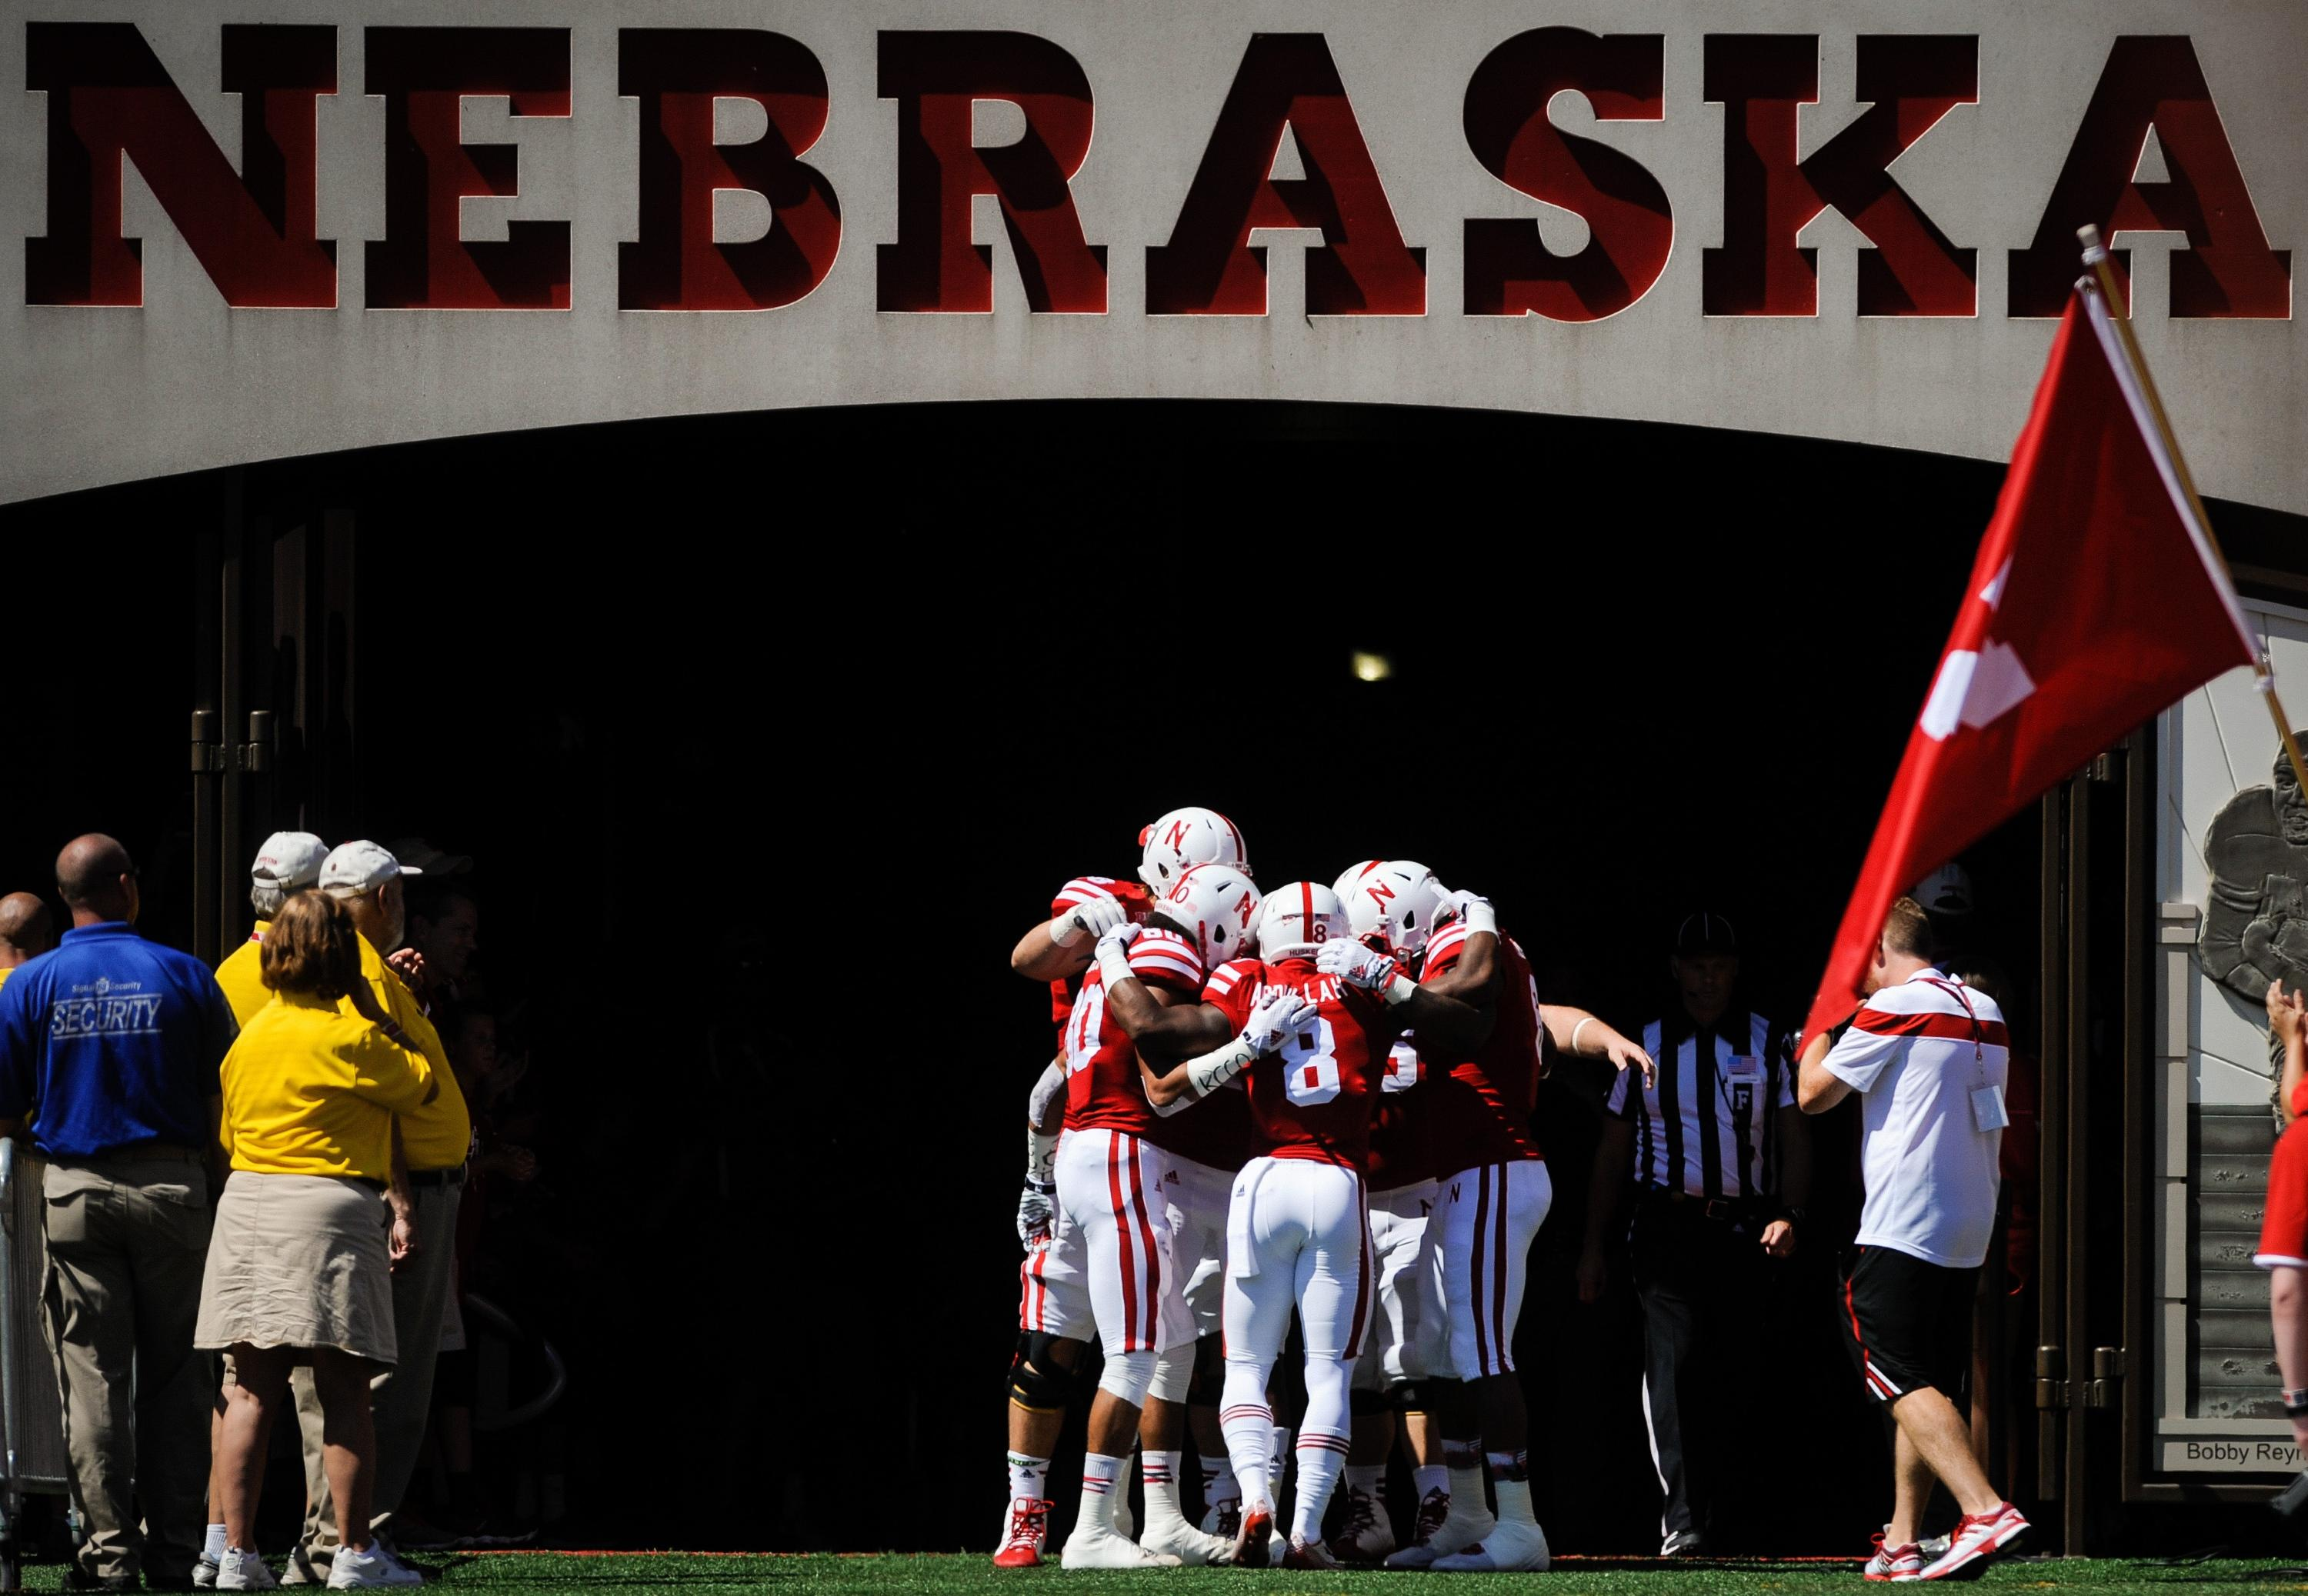 Nebraska parts with new PA announcer after discovery of Facebook post